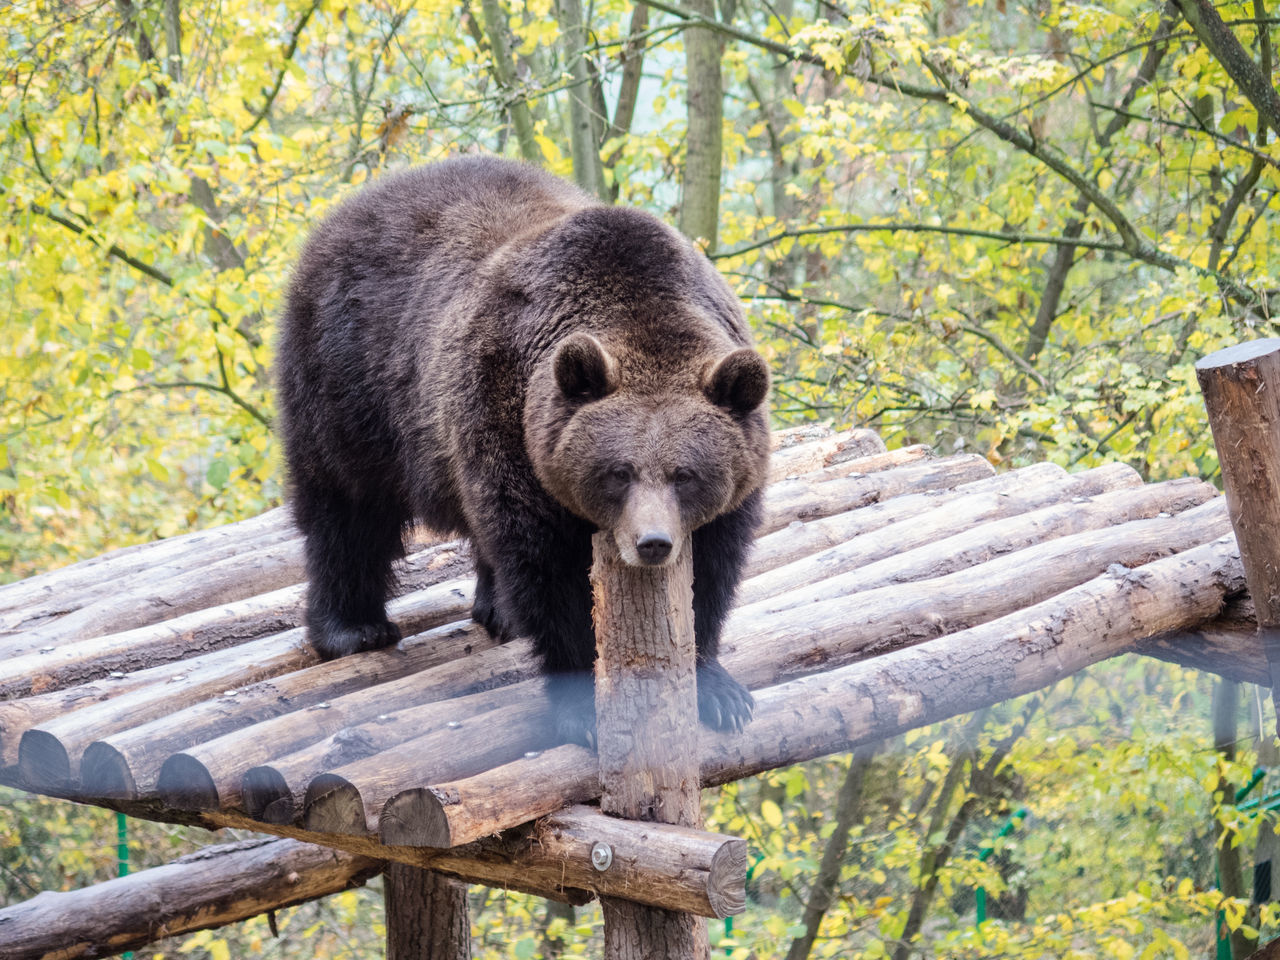 Animal Animal Behavior Animal Photography Animal Portrait Bear Bored Brown Castlemoat Dreaming Fall Beauty Fall Colors Foliage Looking At Camera Thinking Tourist Attraction  Tourist Destination Travel Photography Traveling Wildlife Yellow